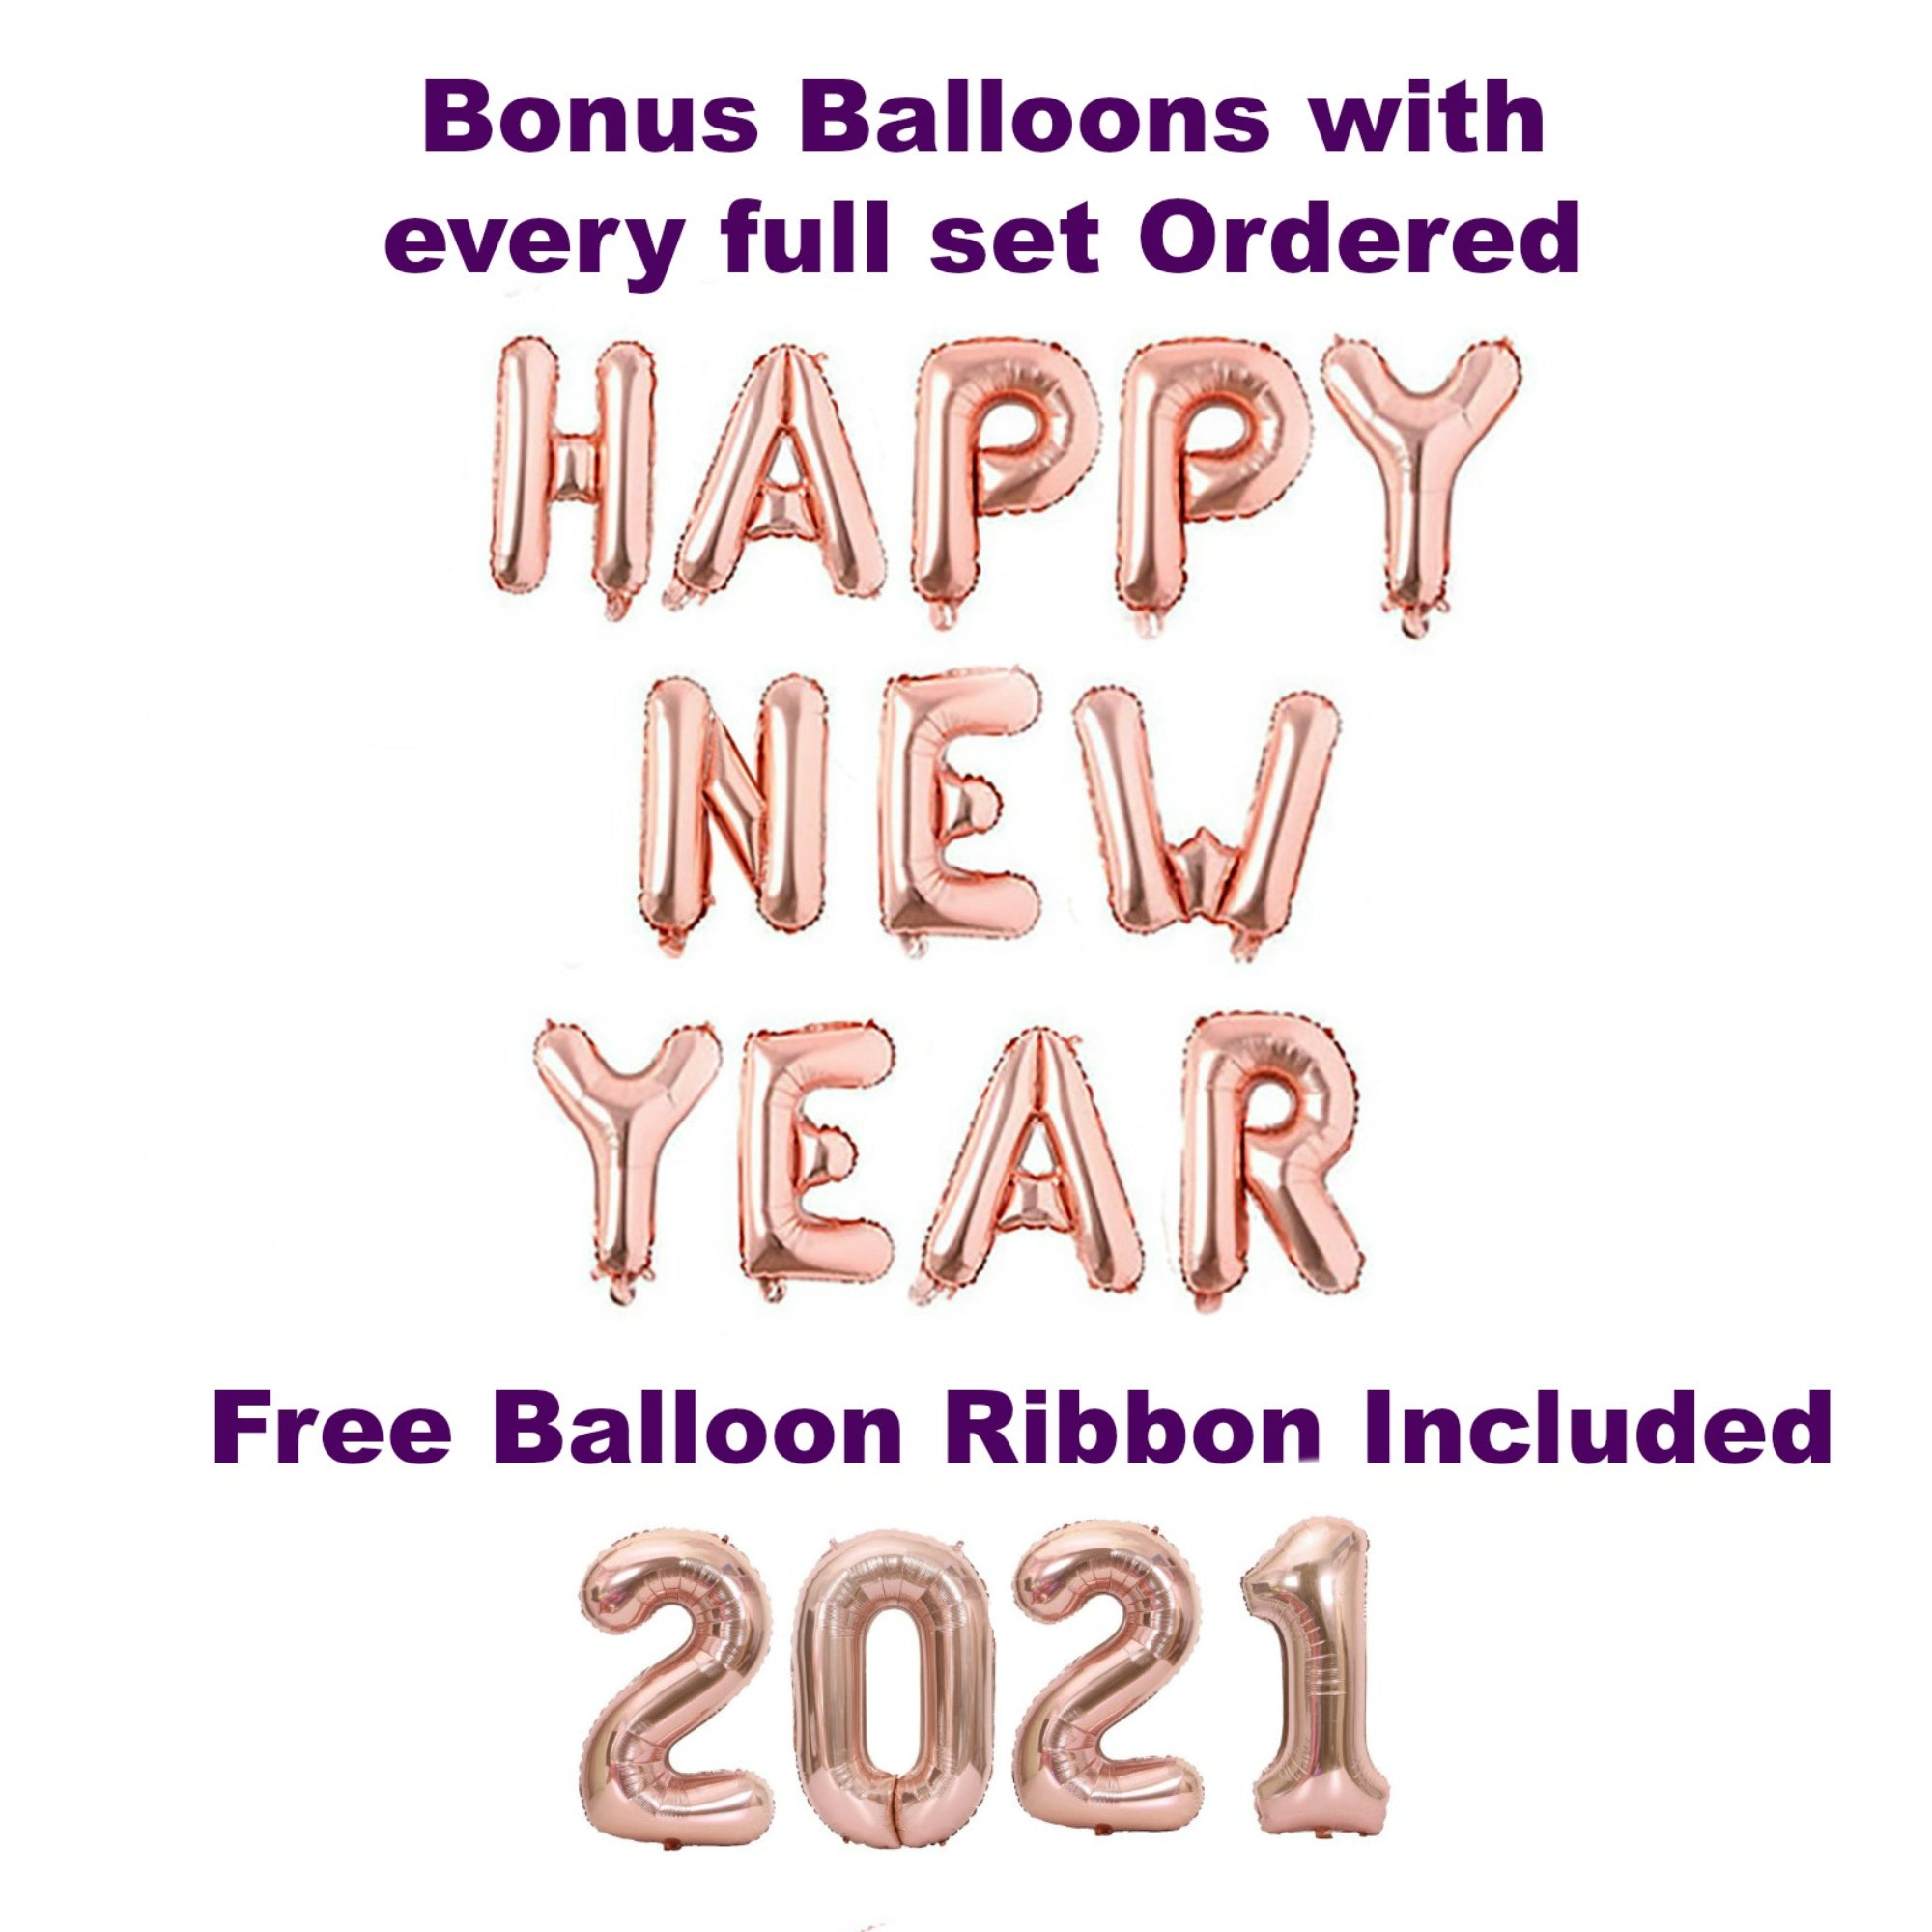 New Years Eve Party Decorations 2021 Rose Gold Balloons Party Ideaz